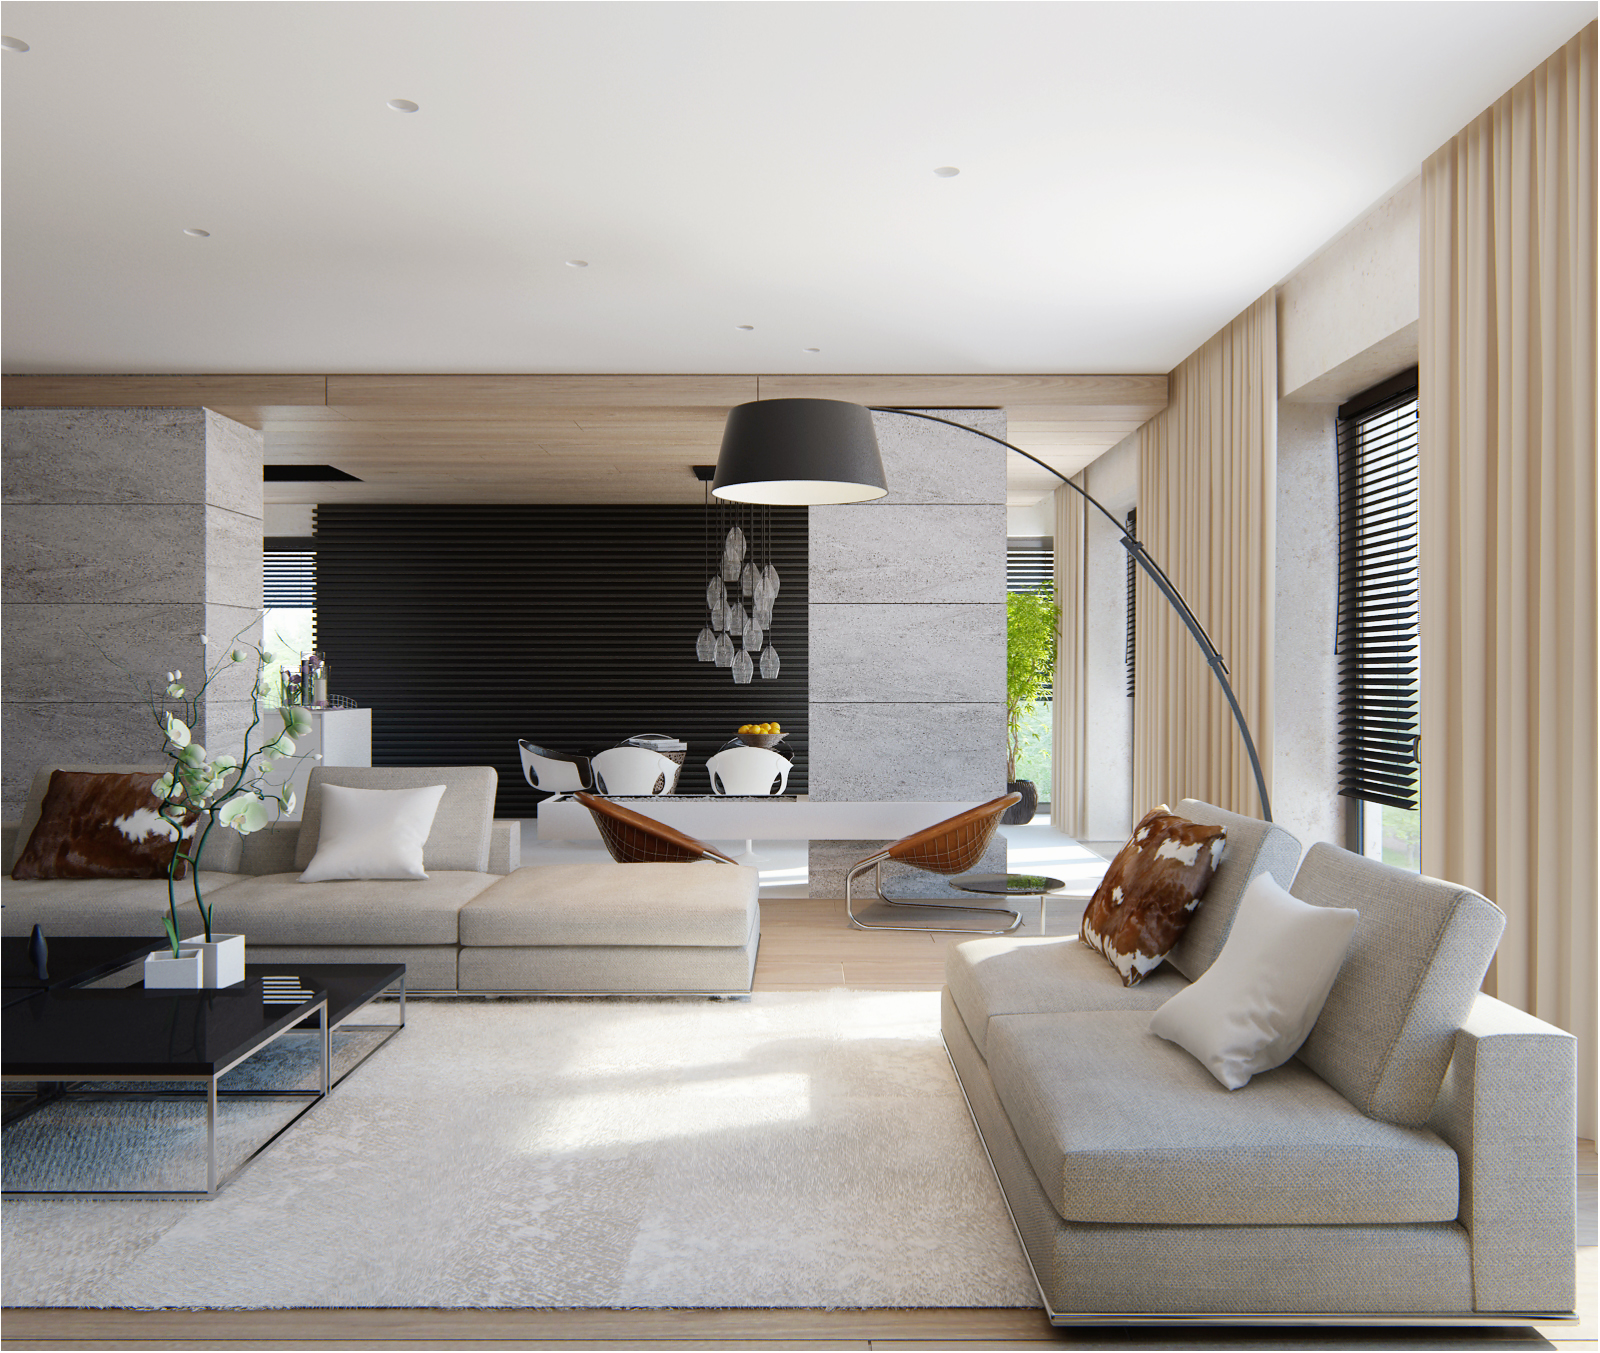 Remarkable House Design Living Space Concepts: DECORACIÓN DE SALONES MODERNOS ESTILO MINIMALISTA